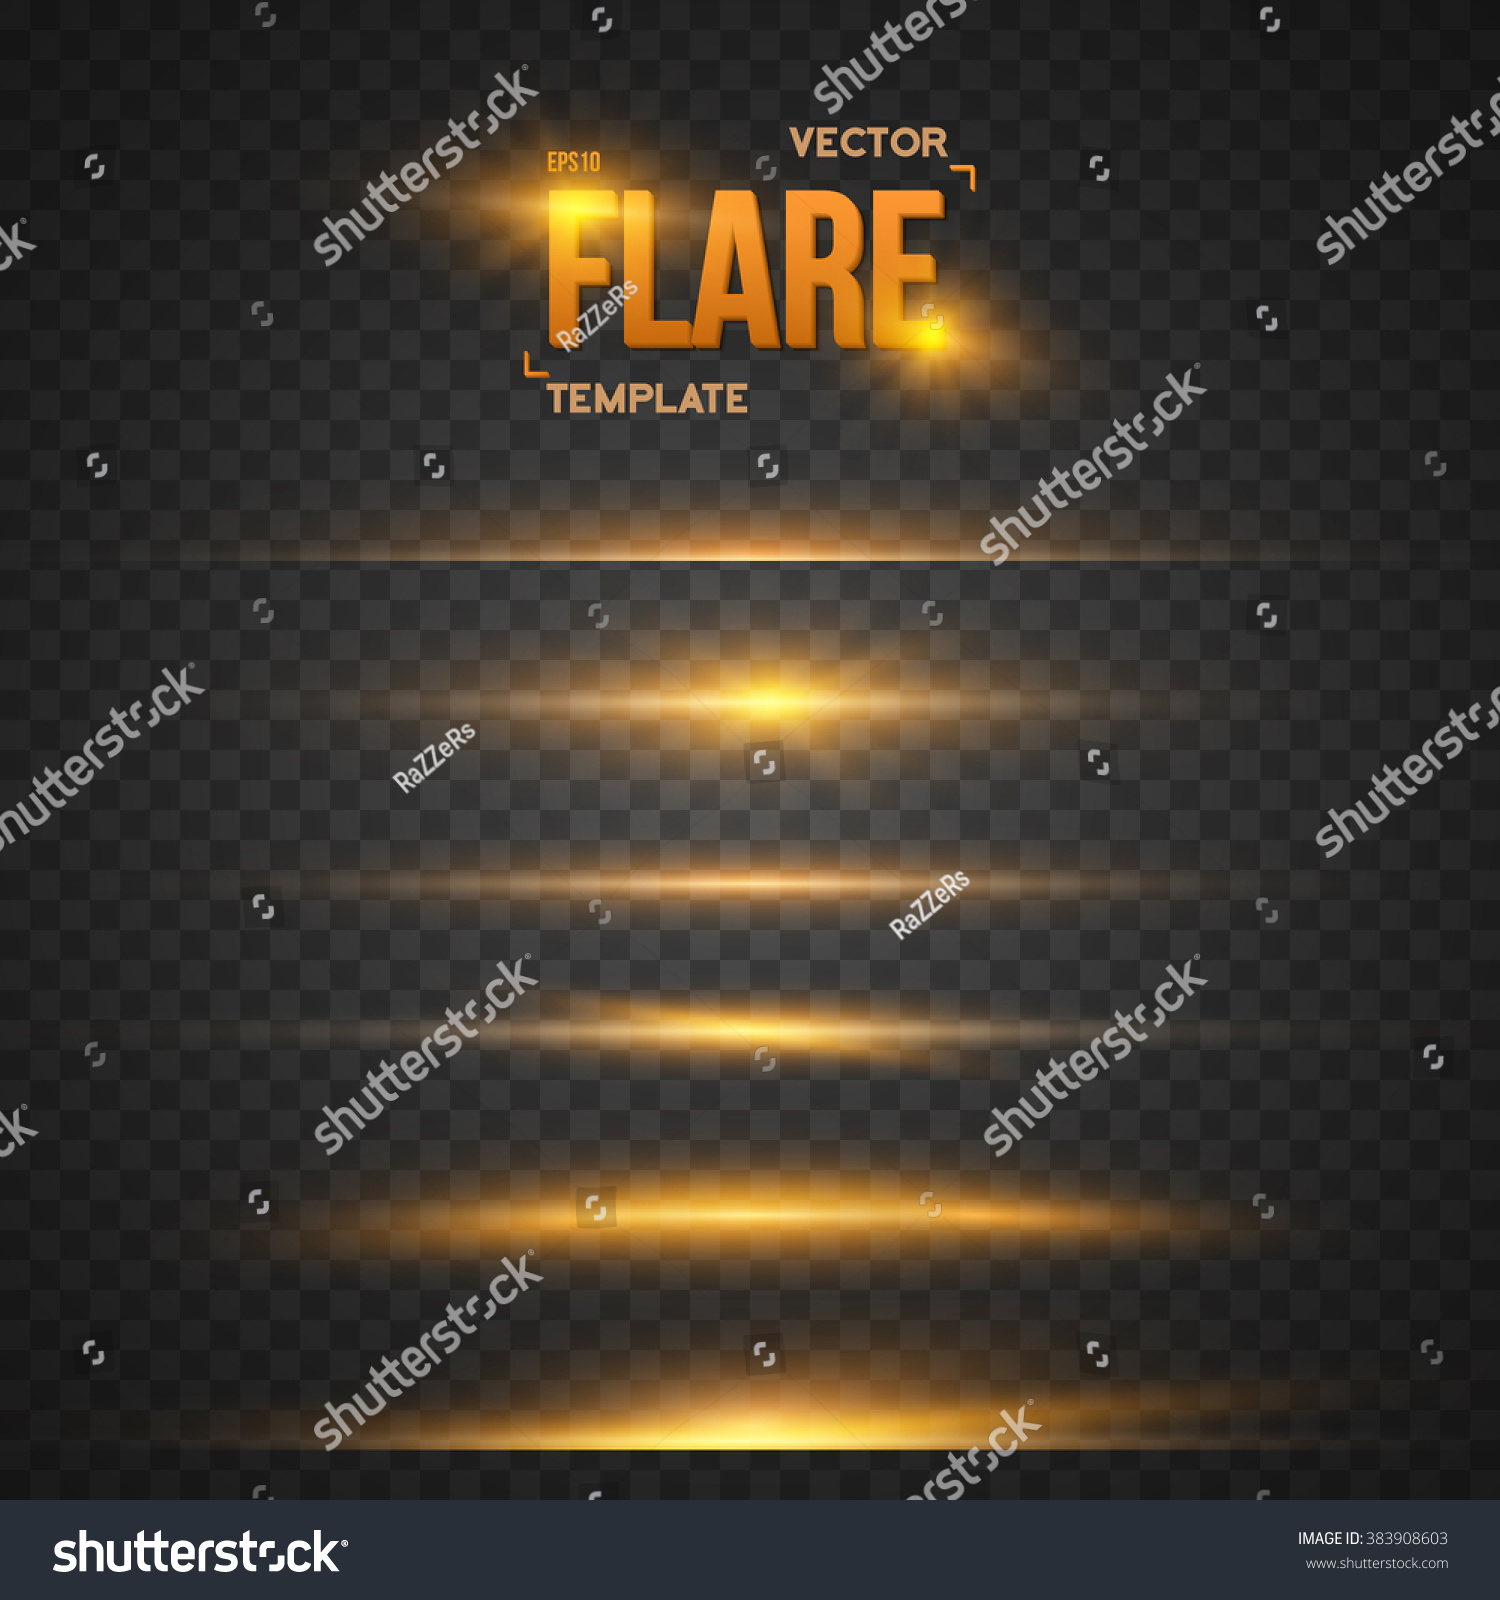 Illustration of Vector Flare Effect Transparent Vector Overlay Lens Flare Ray Effect Vector EPS10 Bright Sunflare Explosion Template